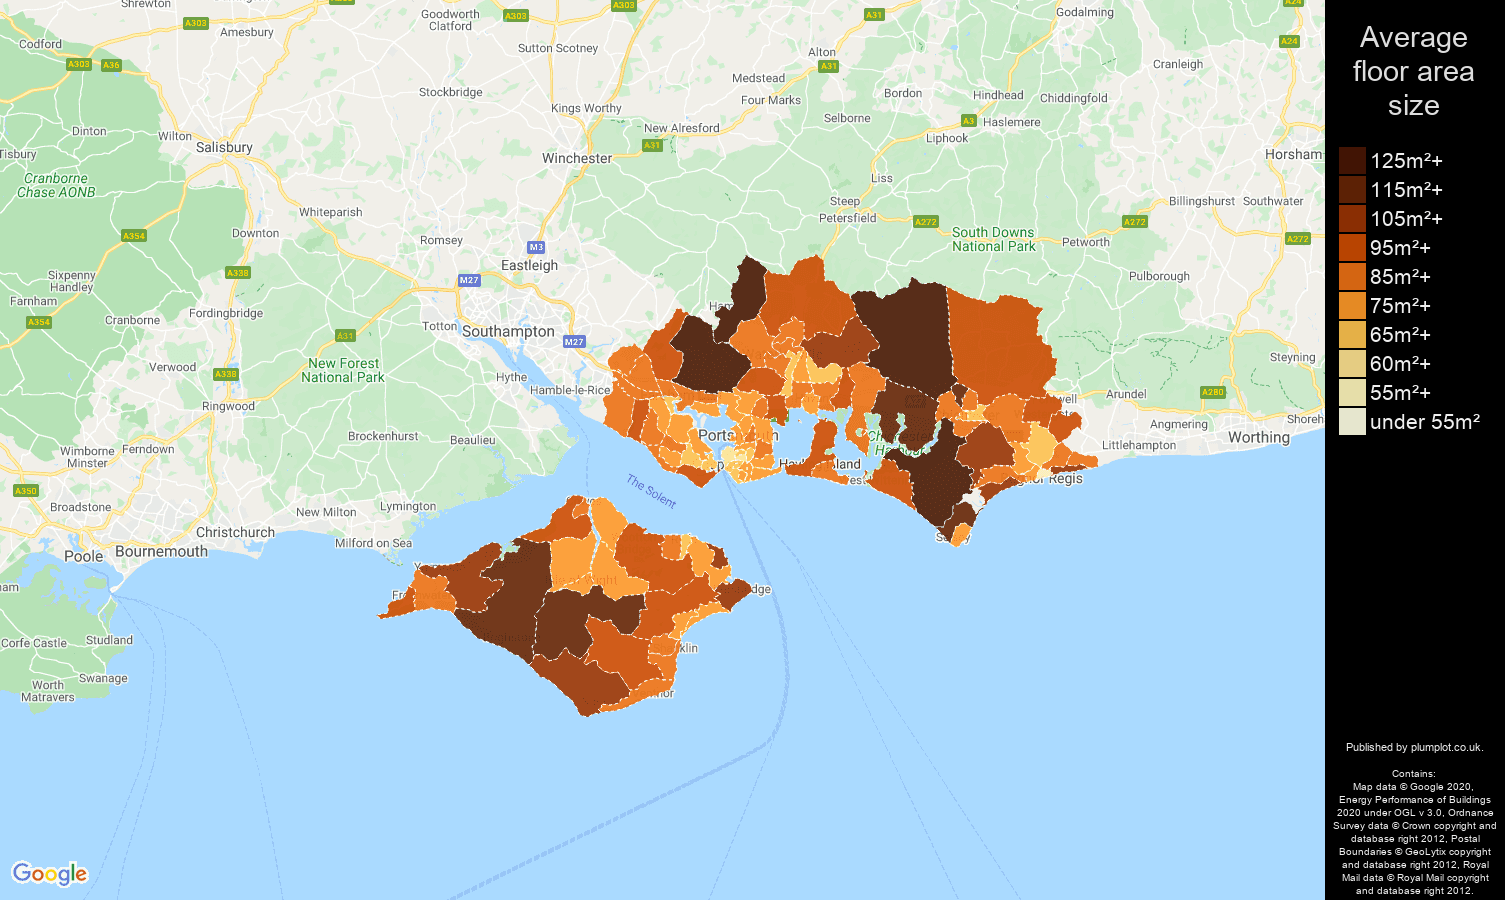 Portsmouth map of average floor area size of properties